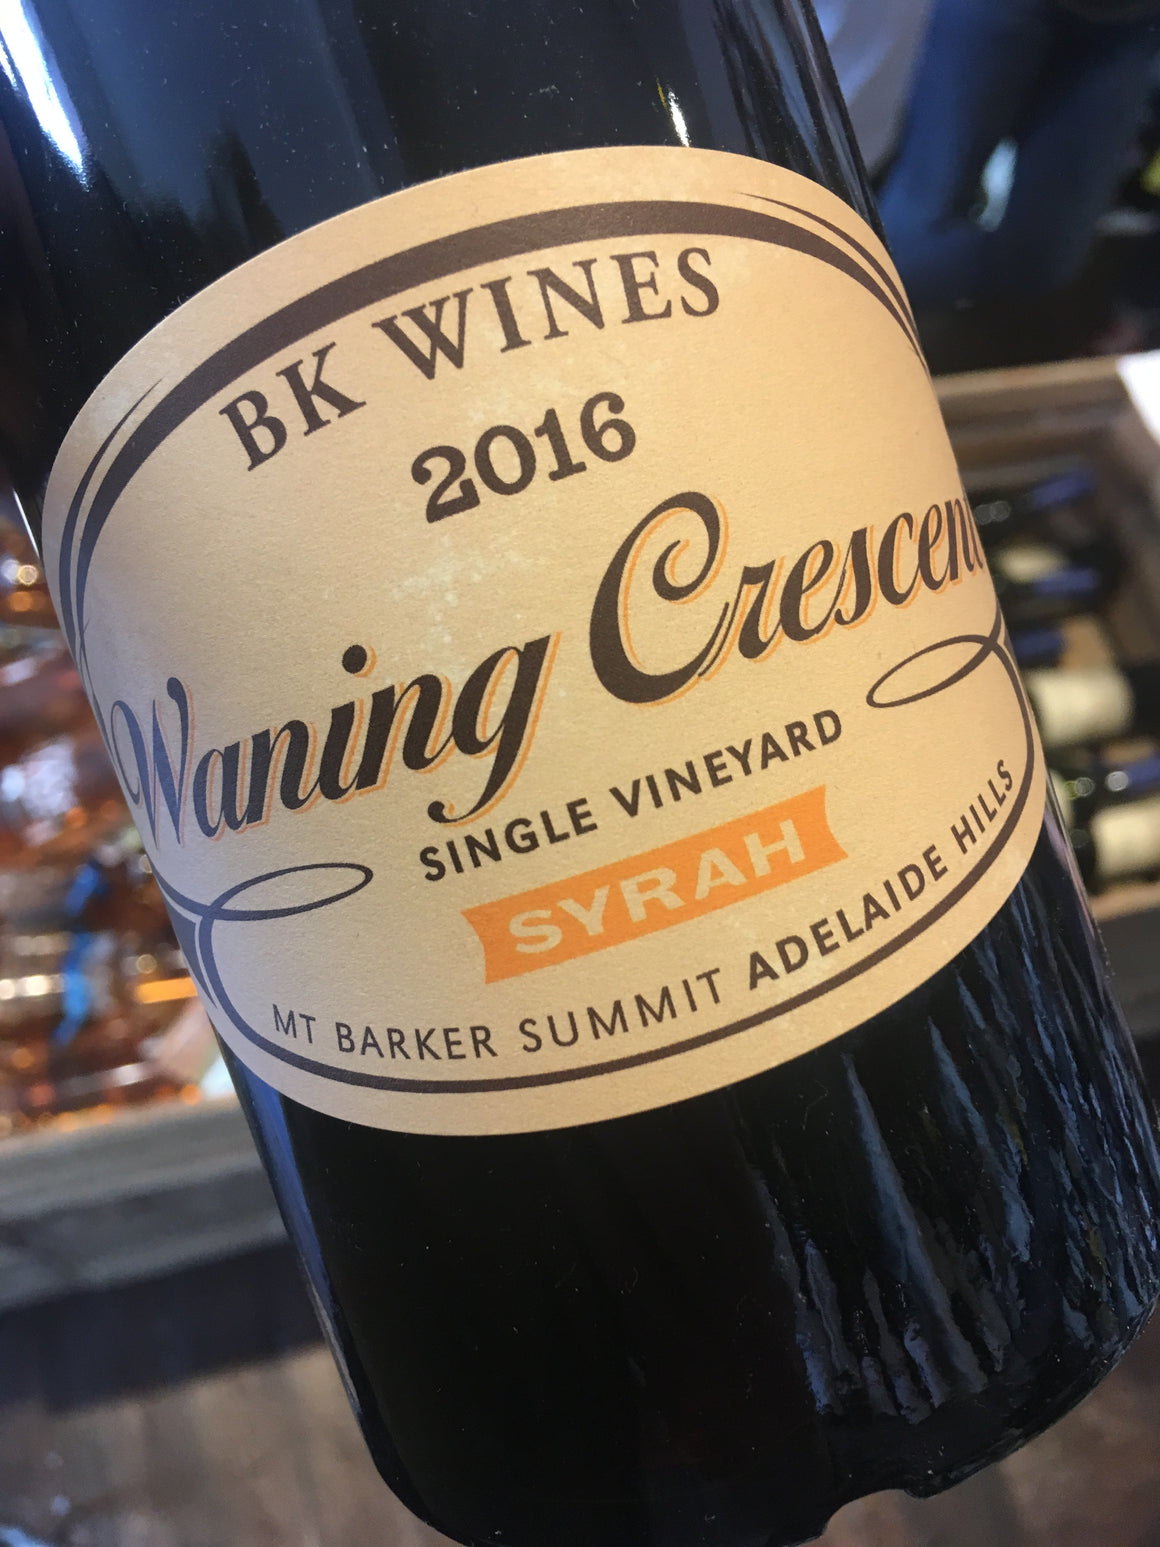 BK Wines Waning Crescent Single Vineyard Syrah 2016 75cl